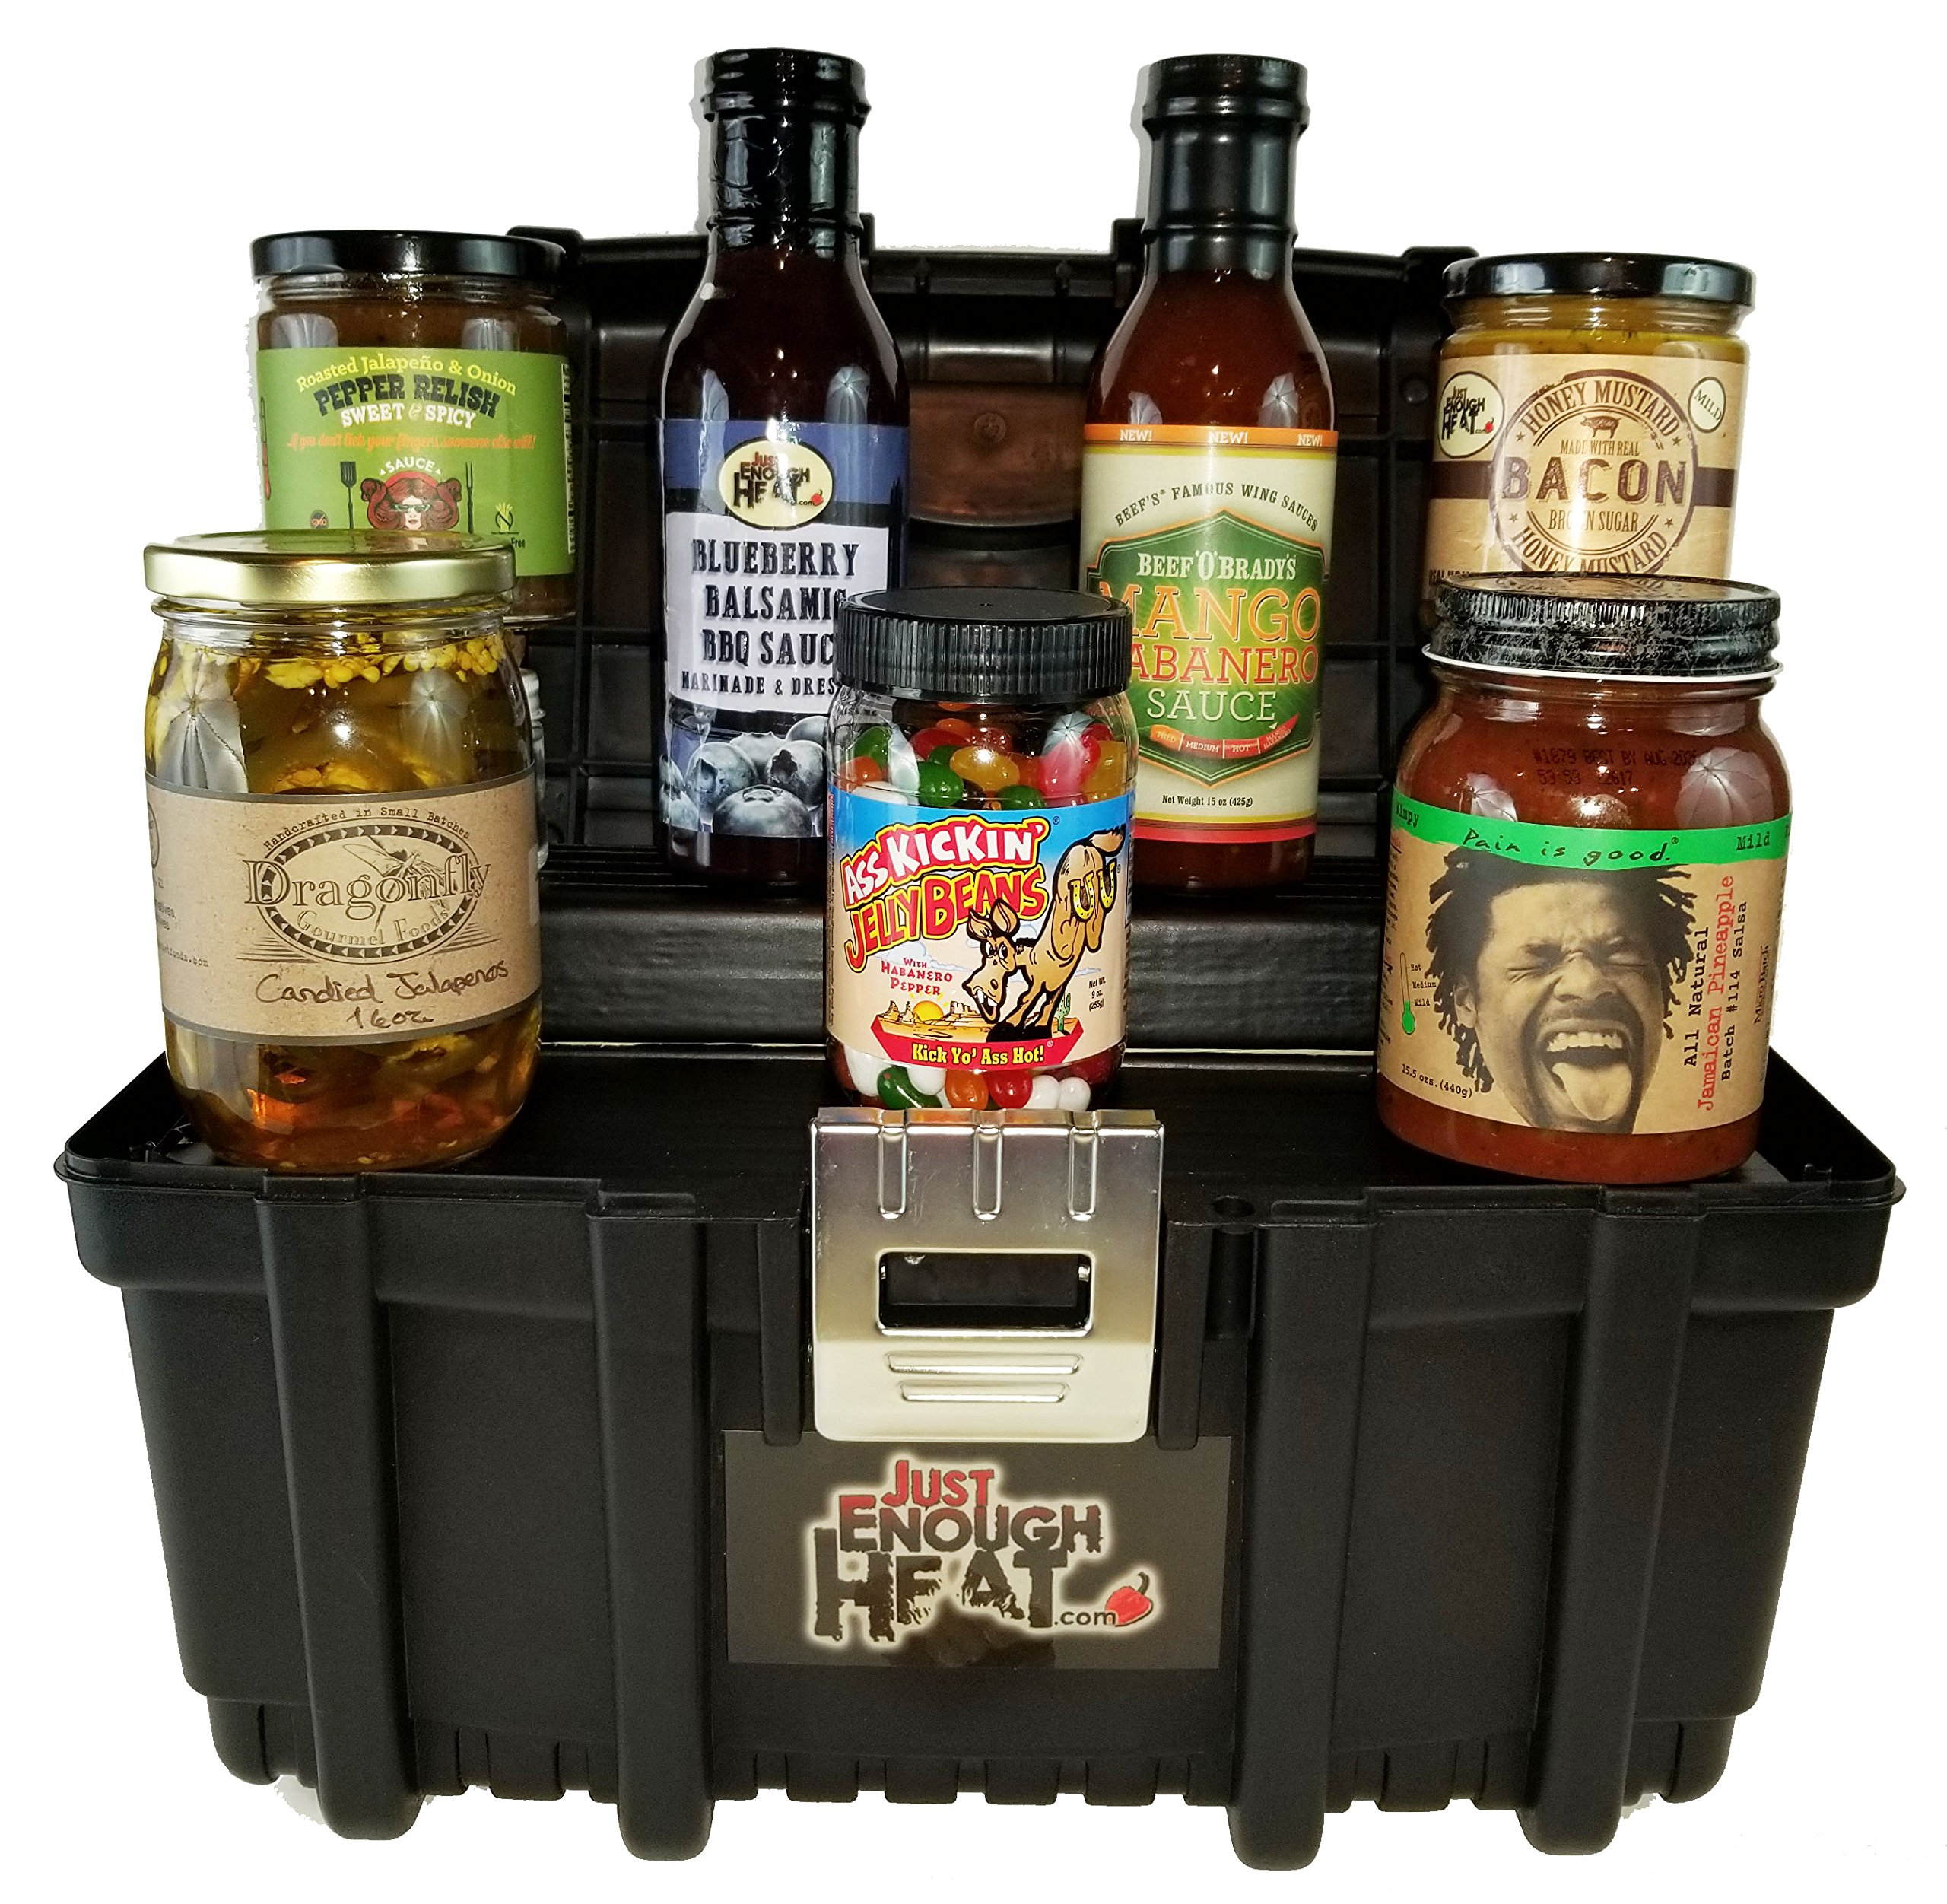 Buy Shop Owners Gift Lot Includes Toolbox Labels Eye Saver Chrome Circuit Breaker Identification Spicy Sweet Gourmet Set Hot Sauce Food Basket For Men Women By Just Enough Heat